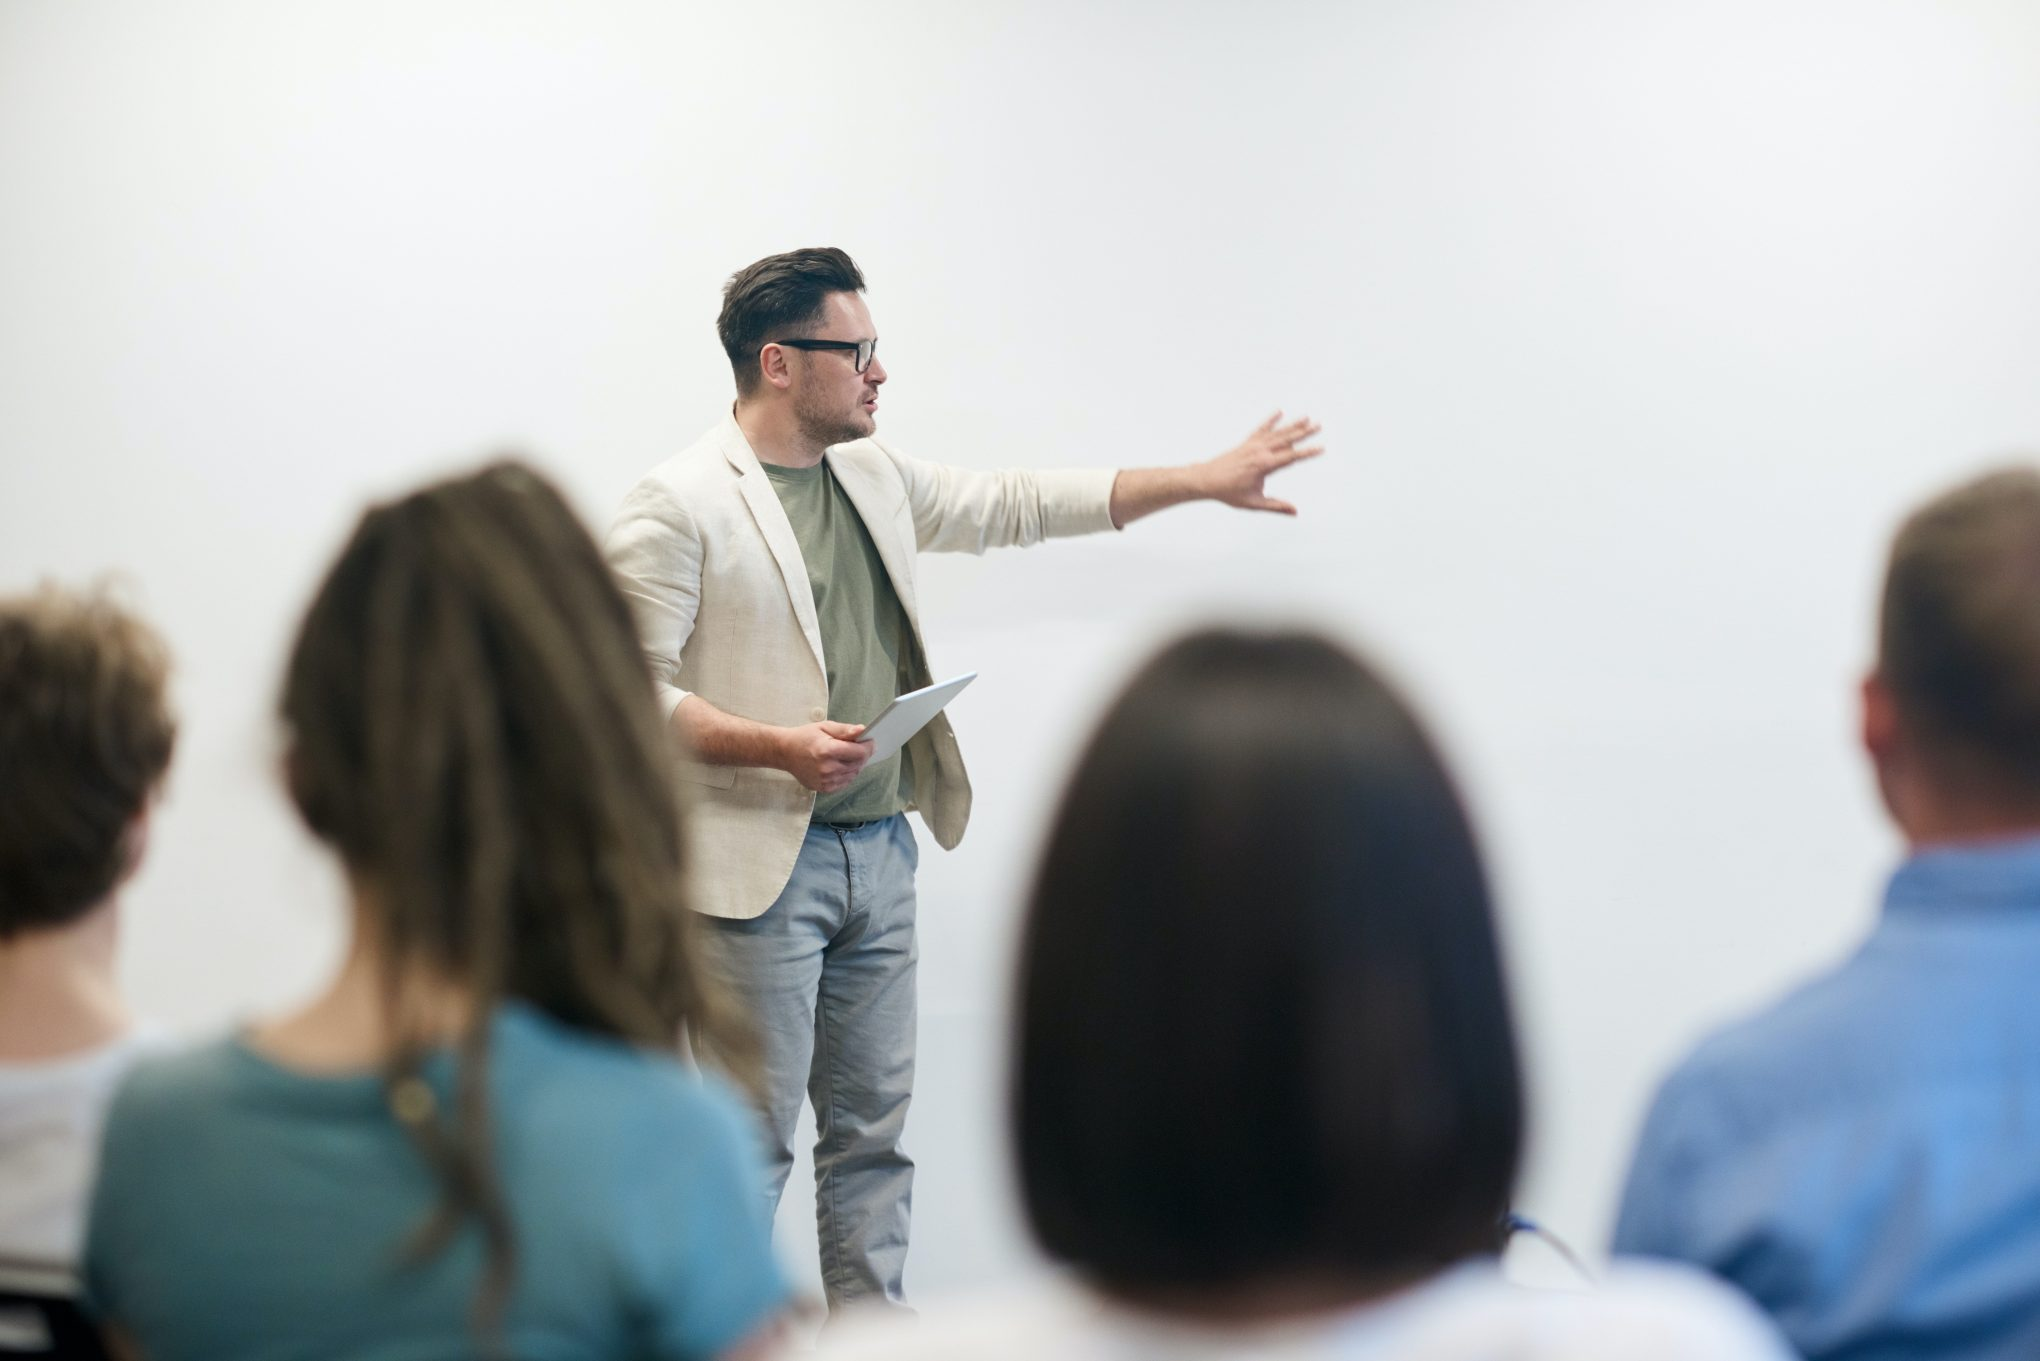 Man with glasses teaching class